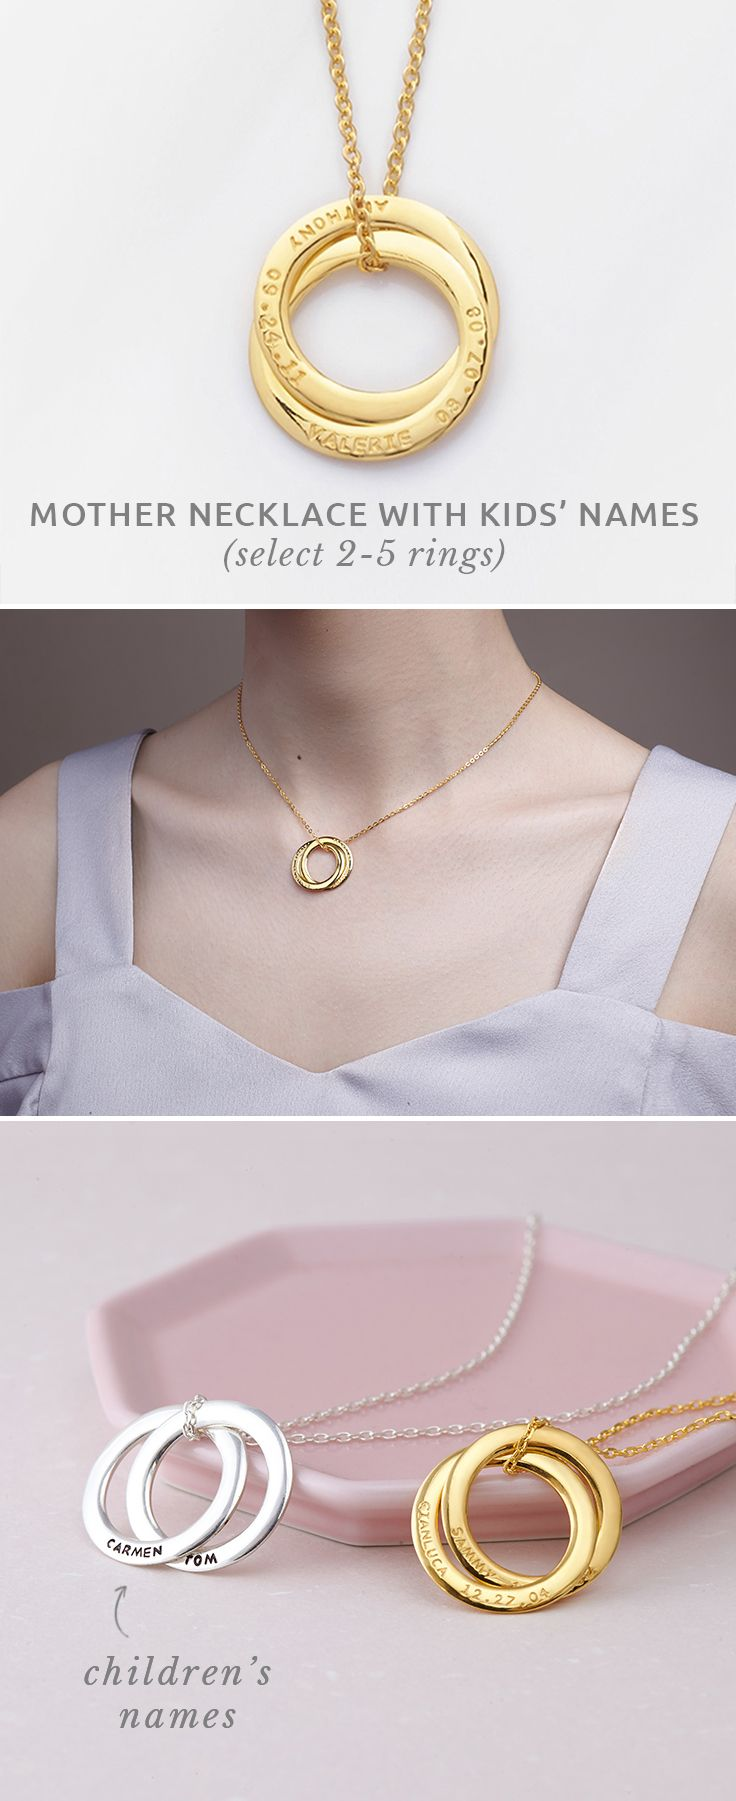 98 best Name Jewelry images on Pinterest | Anniversary favors ...